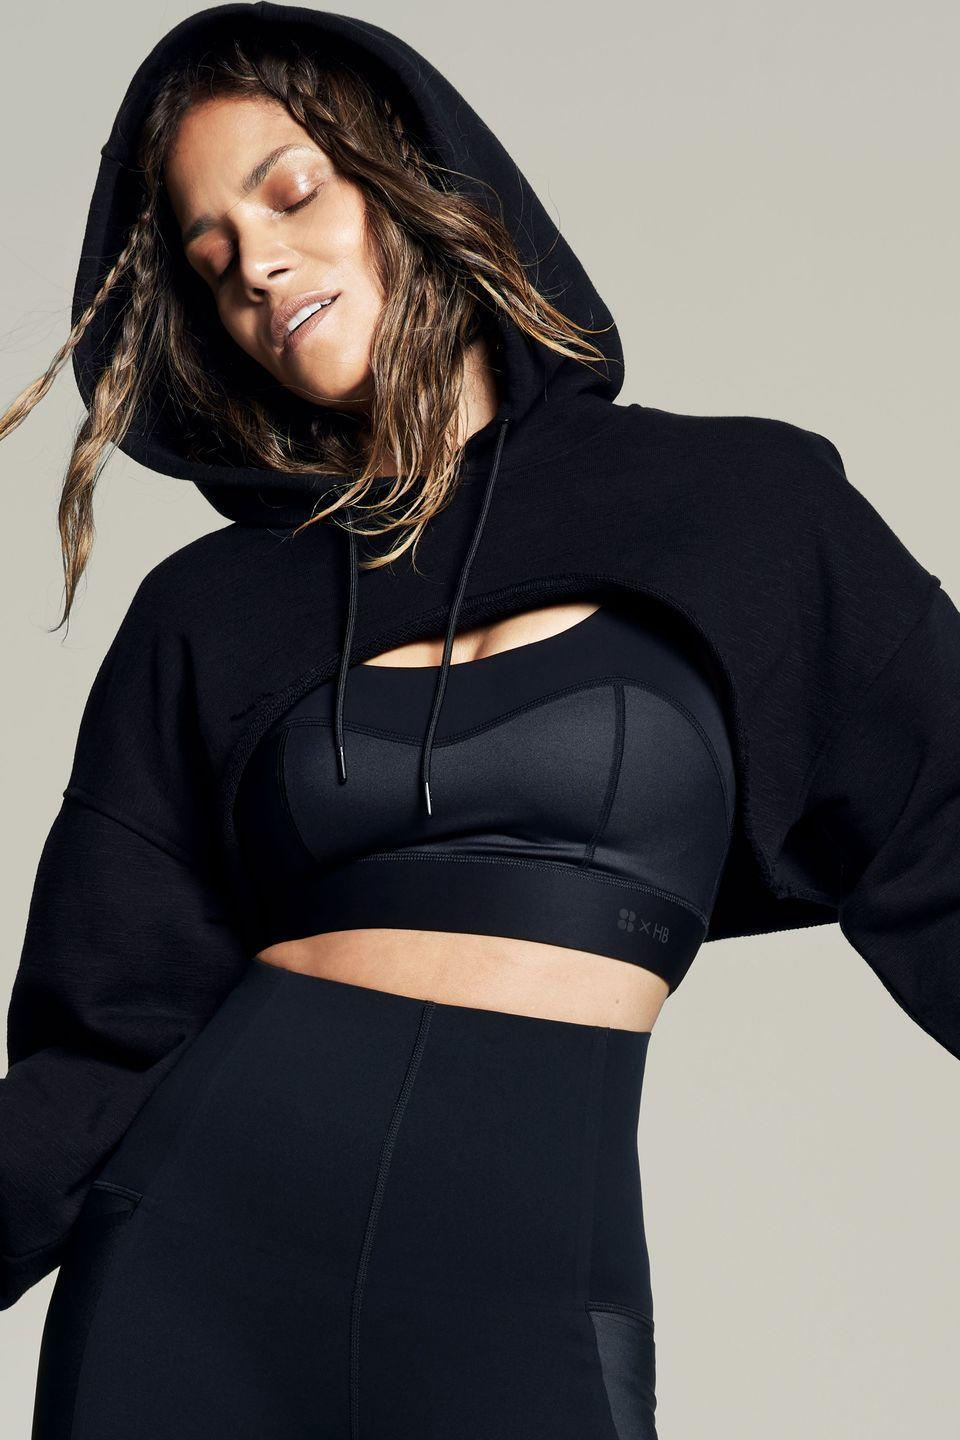 """<p>A sleek all-black set that feels a million dollars (just look at Halle's face. It says it all.) Made from premium technical materials this is about as luxe as sportswear gets.</p><p><strong>How much? </strong>Bra, £60, leggings, £75</p><p><a class=""""link rapid-noclick-resp"""" href=""""https://go.redirectingat.com?id=127X1599956&url=https%3A%2F%2Fwww.sweatybetty.com%2Fhalle-berry%2Fhalle-berry-edit%2Fstorm-power-shine-workout-bra-SB6905_Black.html&sref=https%3A%2F%2Fwww.redonline.co.uk%2Ffashion%2Ffashion-news%2Fg36470632%2Fsweaty-betty-halle-berry%2F"""" rel=""""nofollow noopener"""" target=""""_blank"""" data-ylk=""""slk:SHOP NOW"""">SHOP NOW</a></p>"""